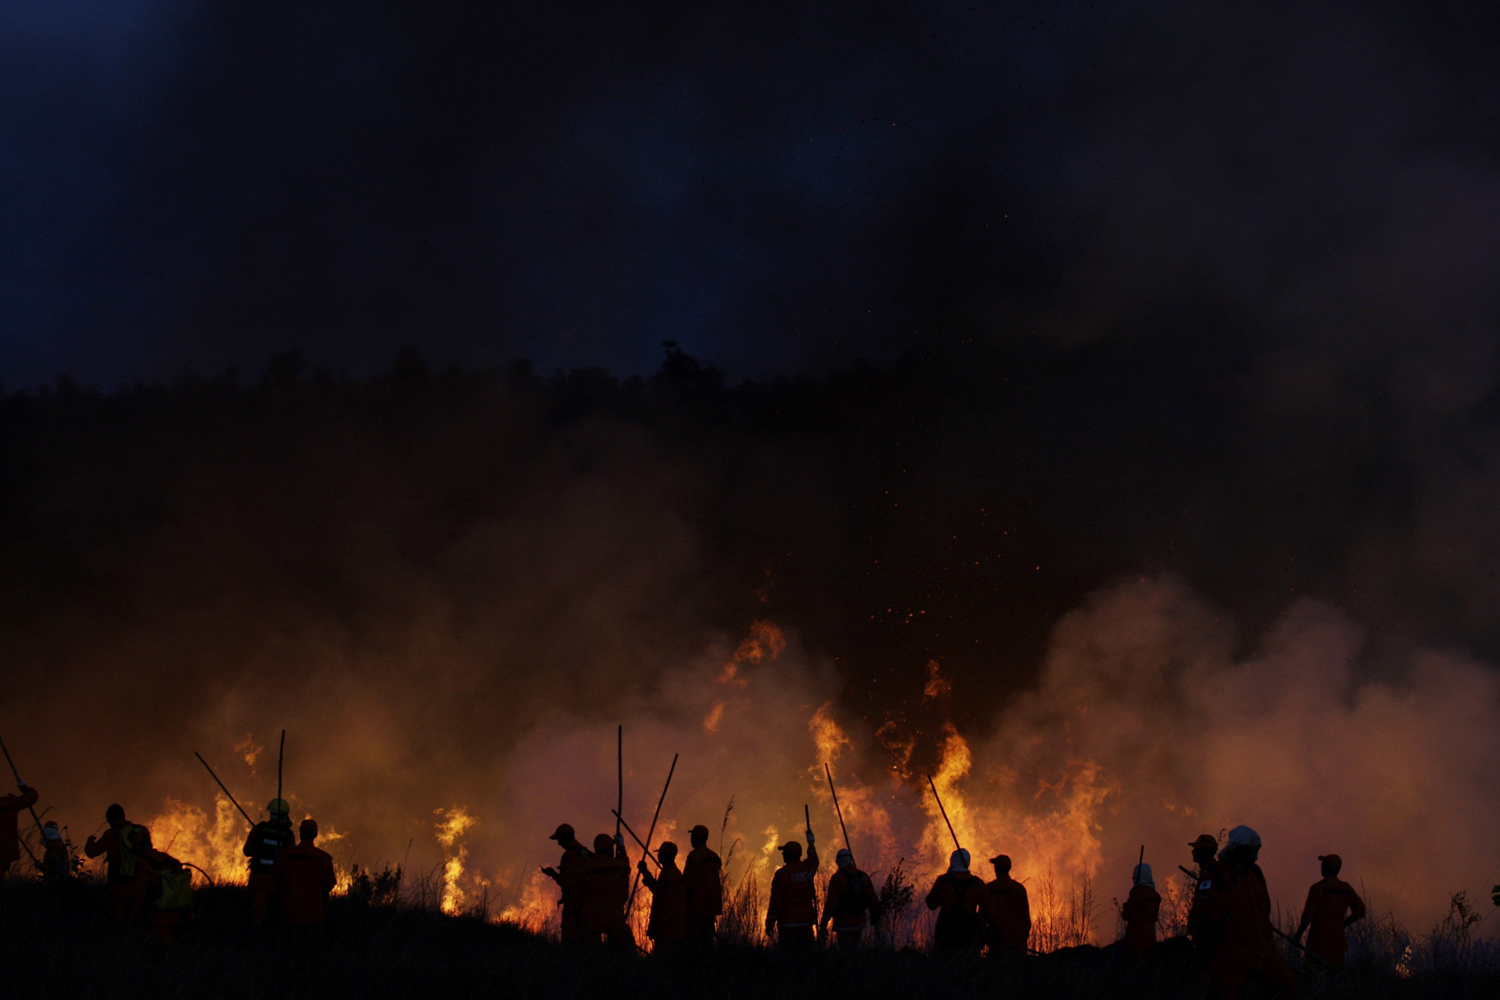 September 9, 2011. Firefighters put out a blaze at a national forest reserve in Brasilia, Brazil. Drought, high temperatures and low humidity have caused fires to start at several places throughout the city.